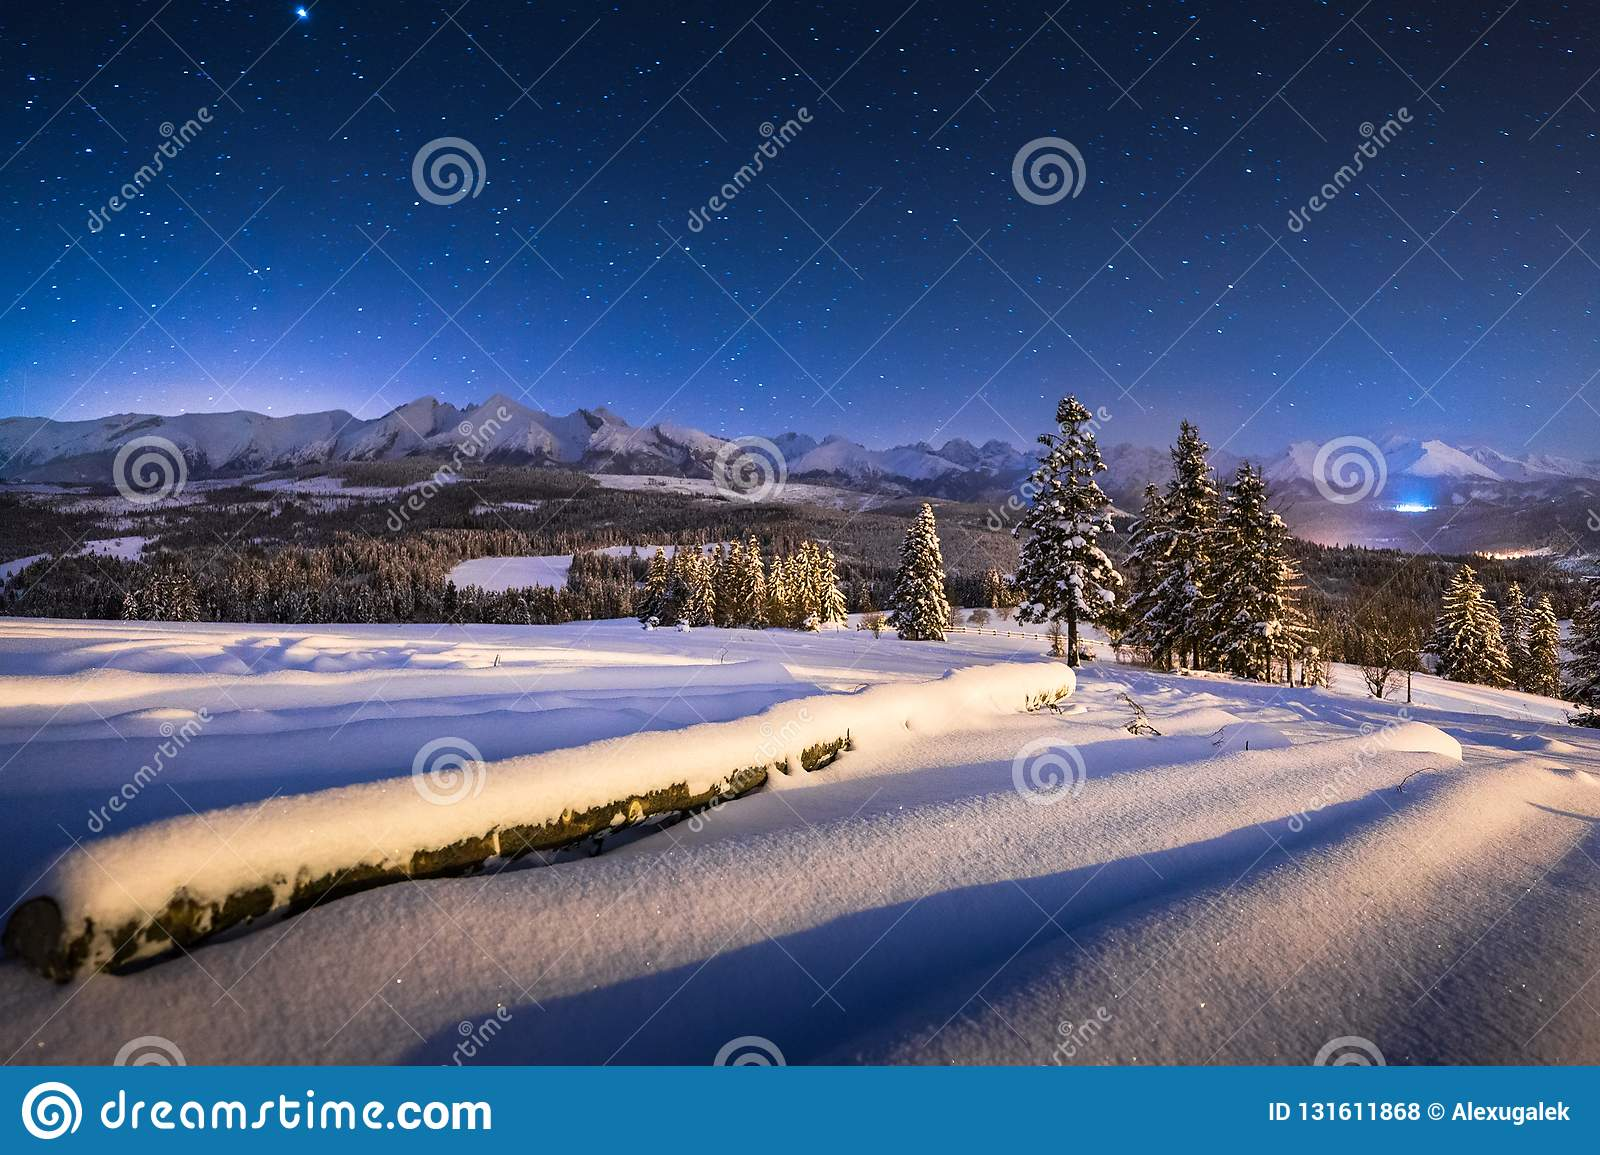 Winter night landscape. Starry blue night sky over winter mountains. Christmas night scenery in mountains